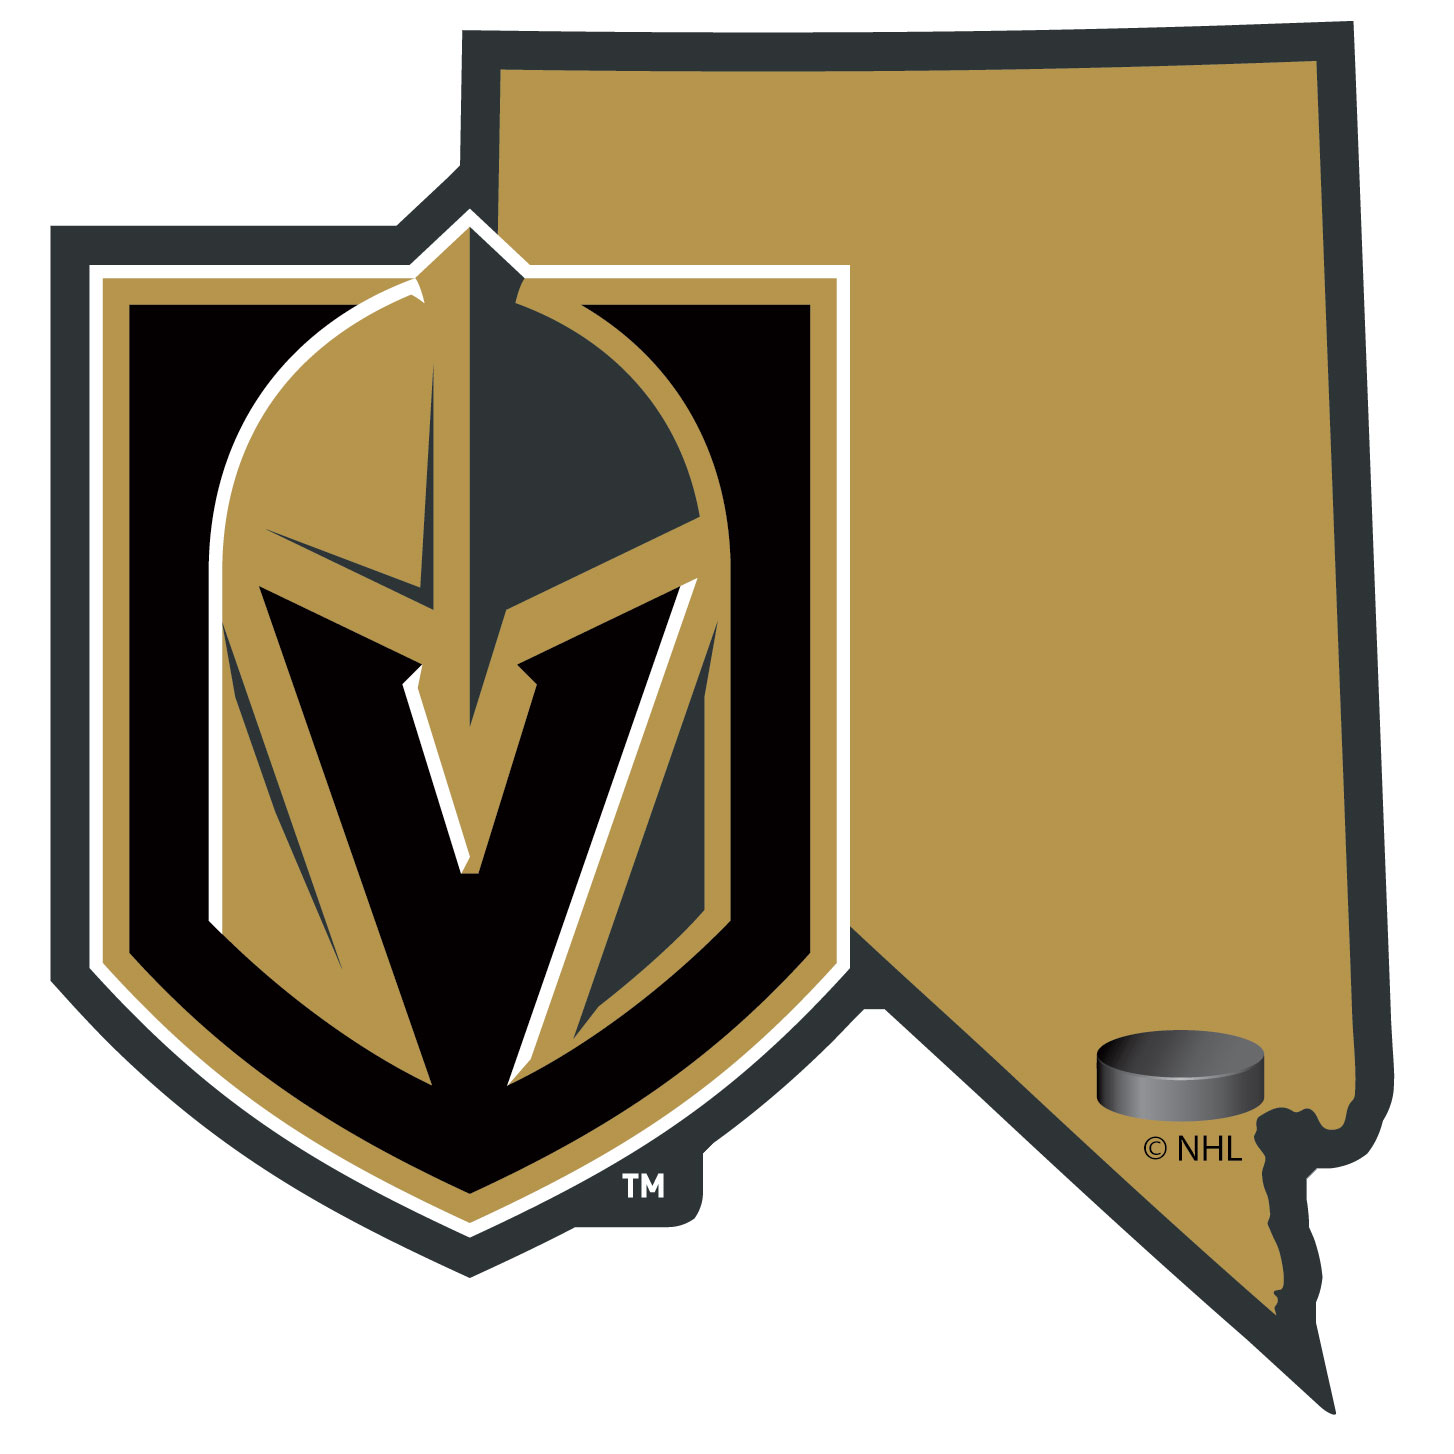 Las Vegas Golden Knights® Home State 11 Inch Magnet - Whether you are caravaning to the game or having a tailgate party make sure you car is wearing its fan gear with our extra large, 11 inch Las Vegas Golden Knights® home state magnets. These striking magnets can be easily placed on for game day and removed without he residue left by decals. The design features a bright state outline with the location of the team highlighted with a football and a large team logo.